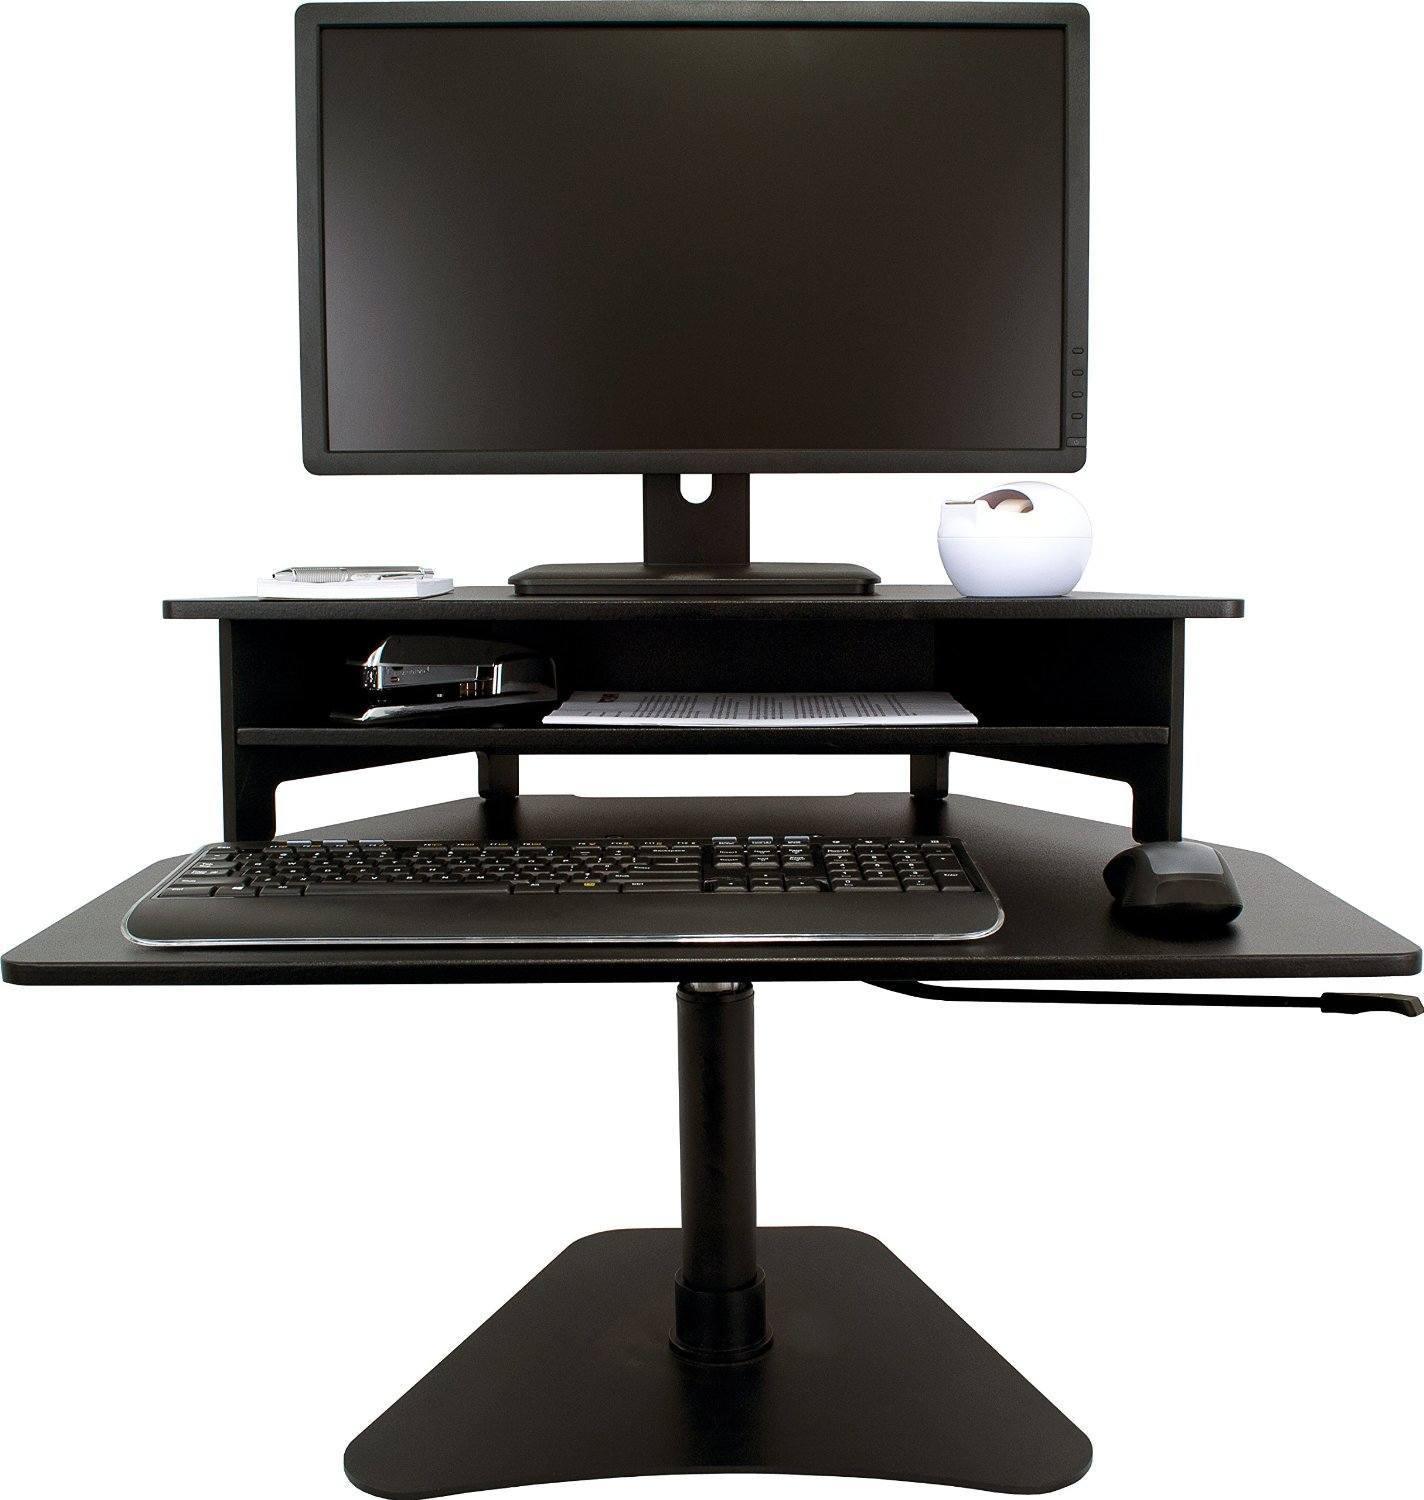 DC200 Adjustable Stand-Up Desk Converter